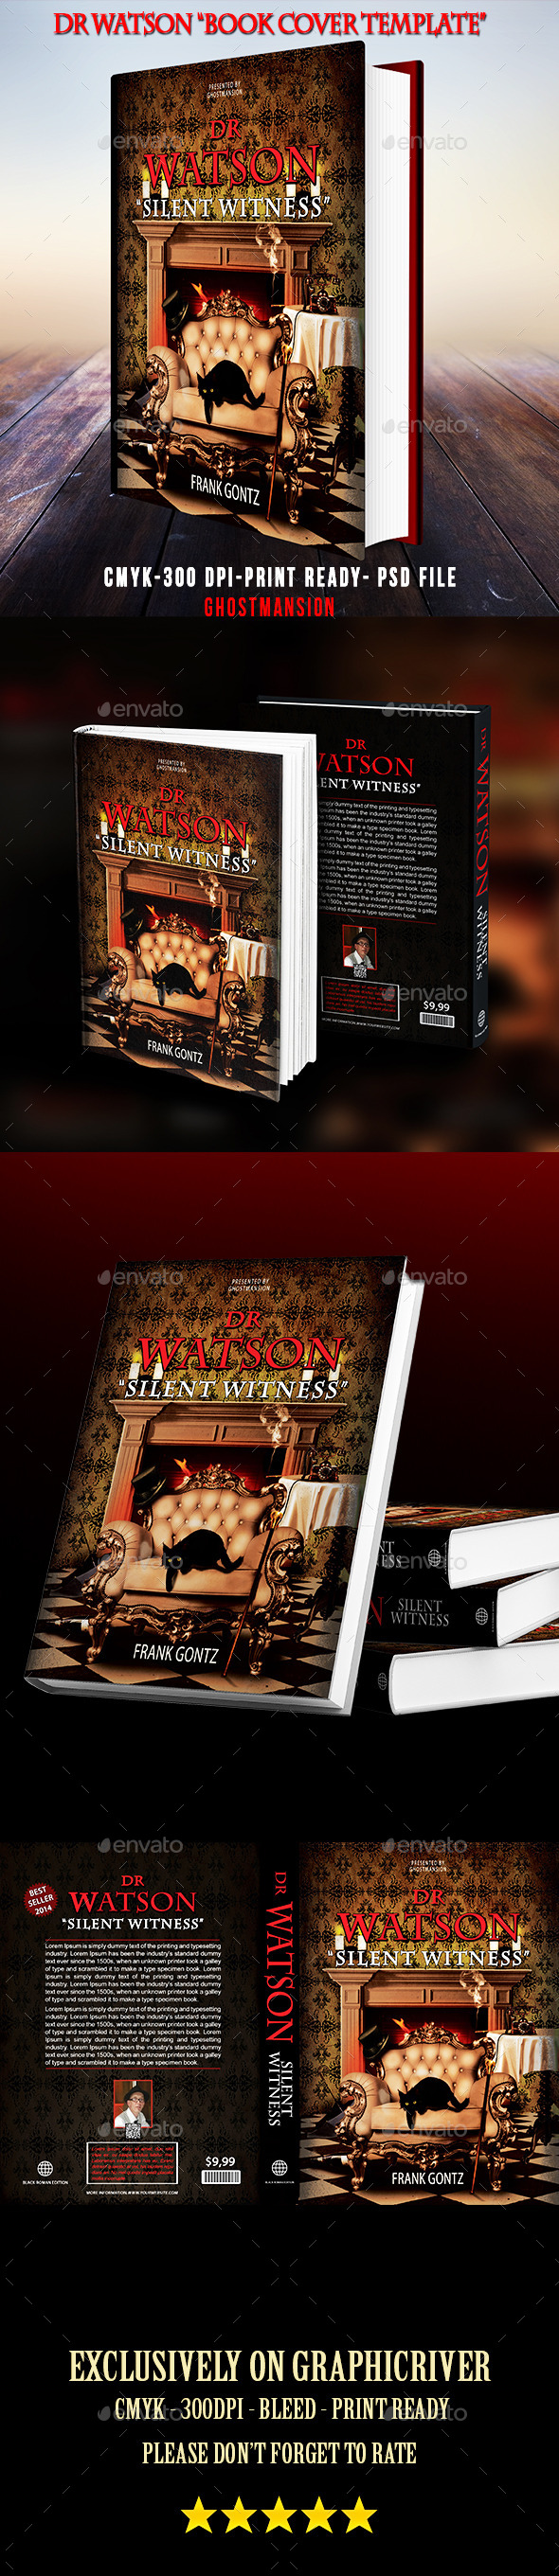 Book Cover Template PSD V2